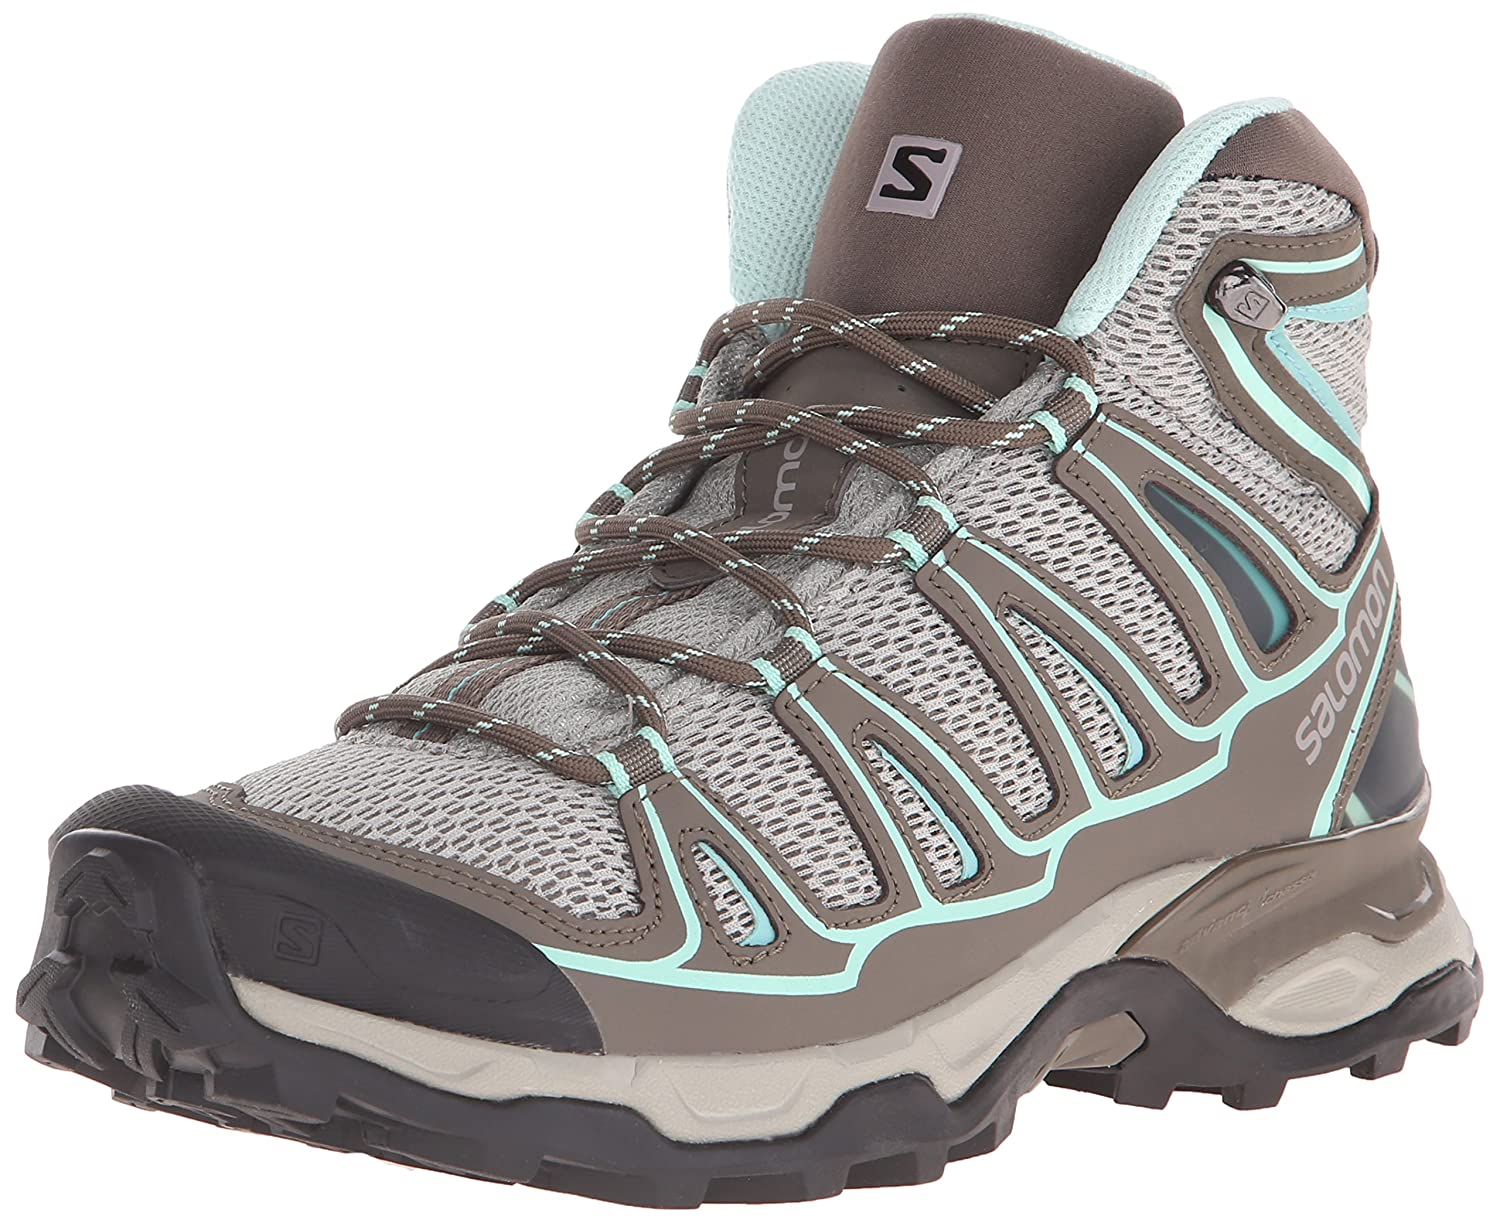 Salomon Women's X Ultra Mid Aero W Hiking Boot B00ZLN4VCO 8.5 B(M) US|Titanium/Swamp/Opaline Blue